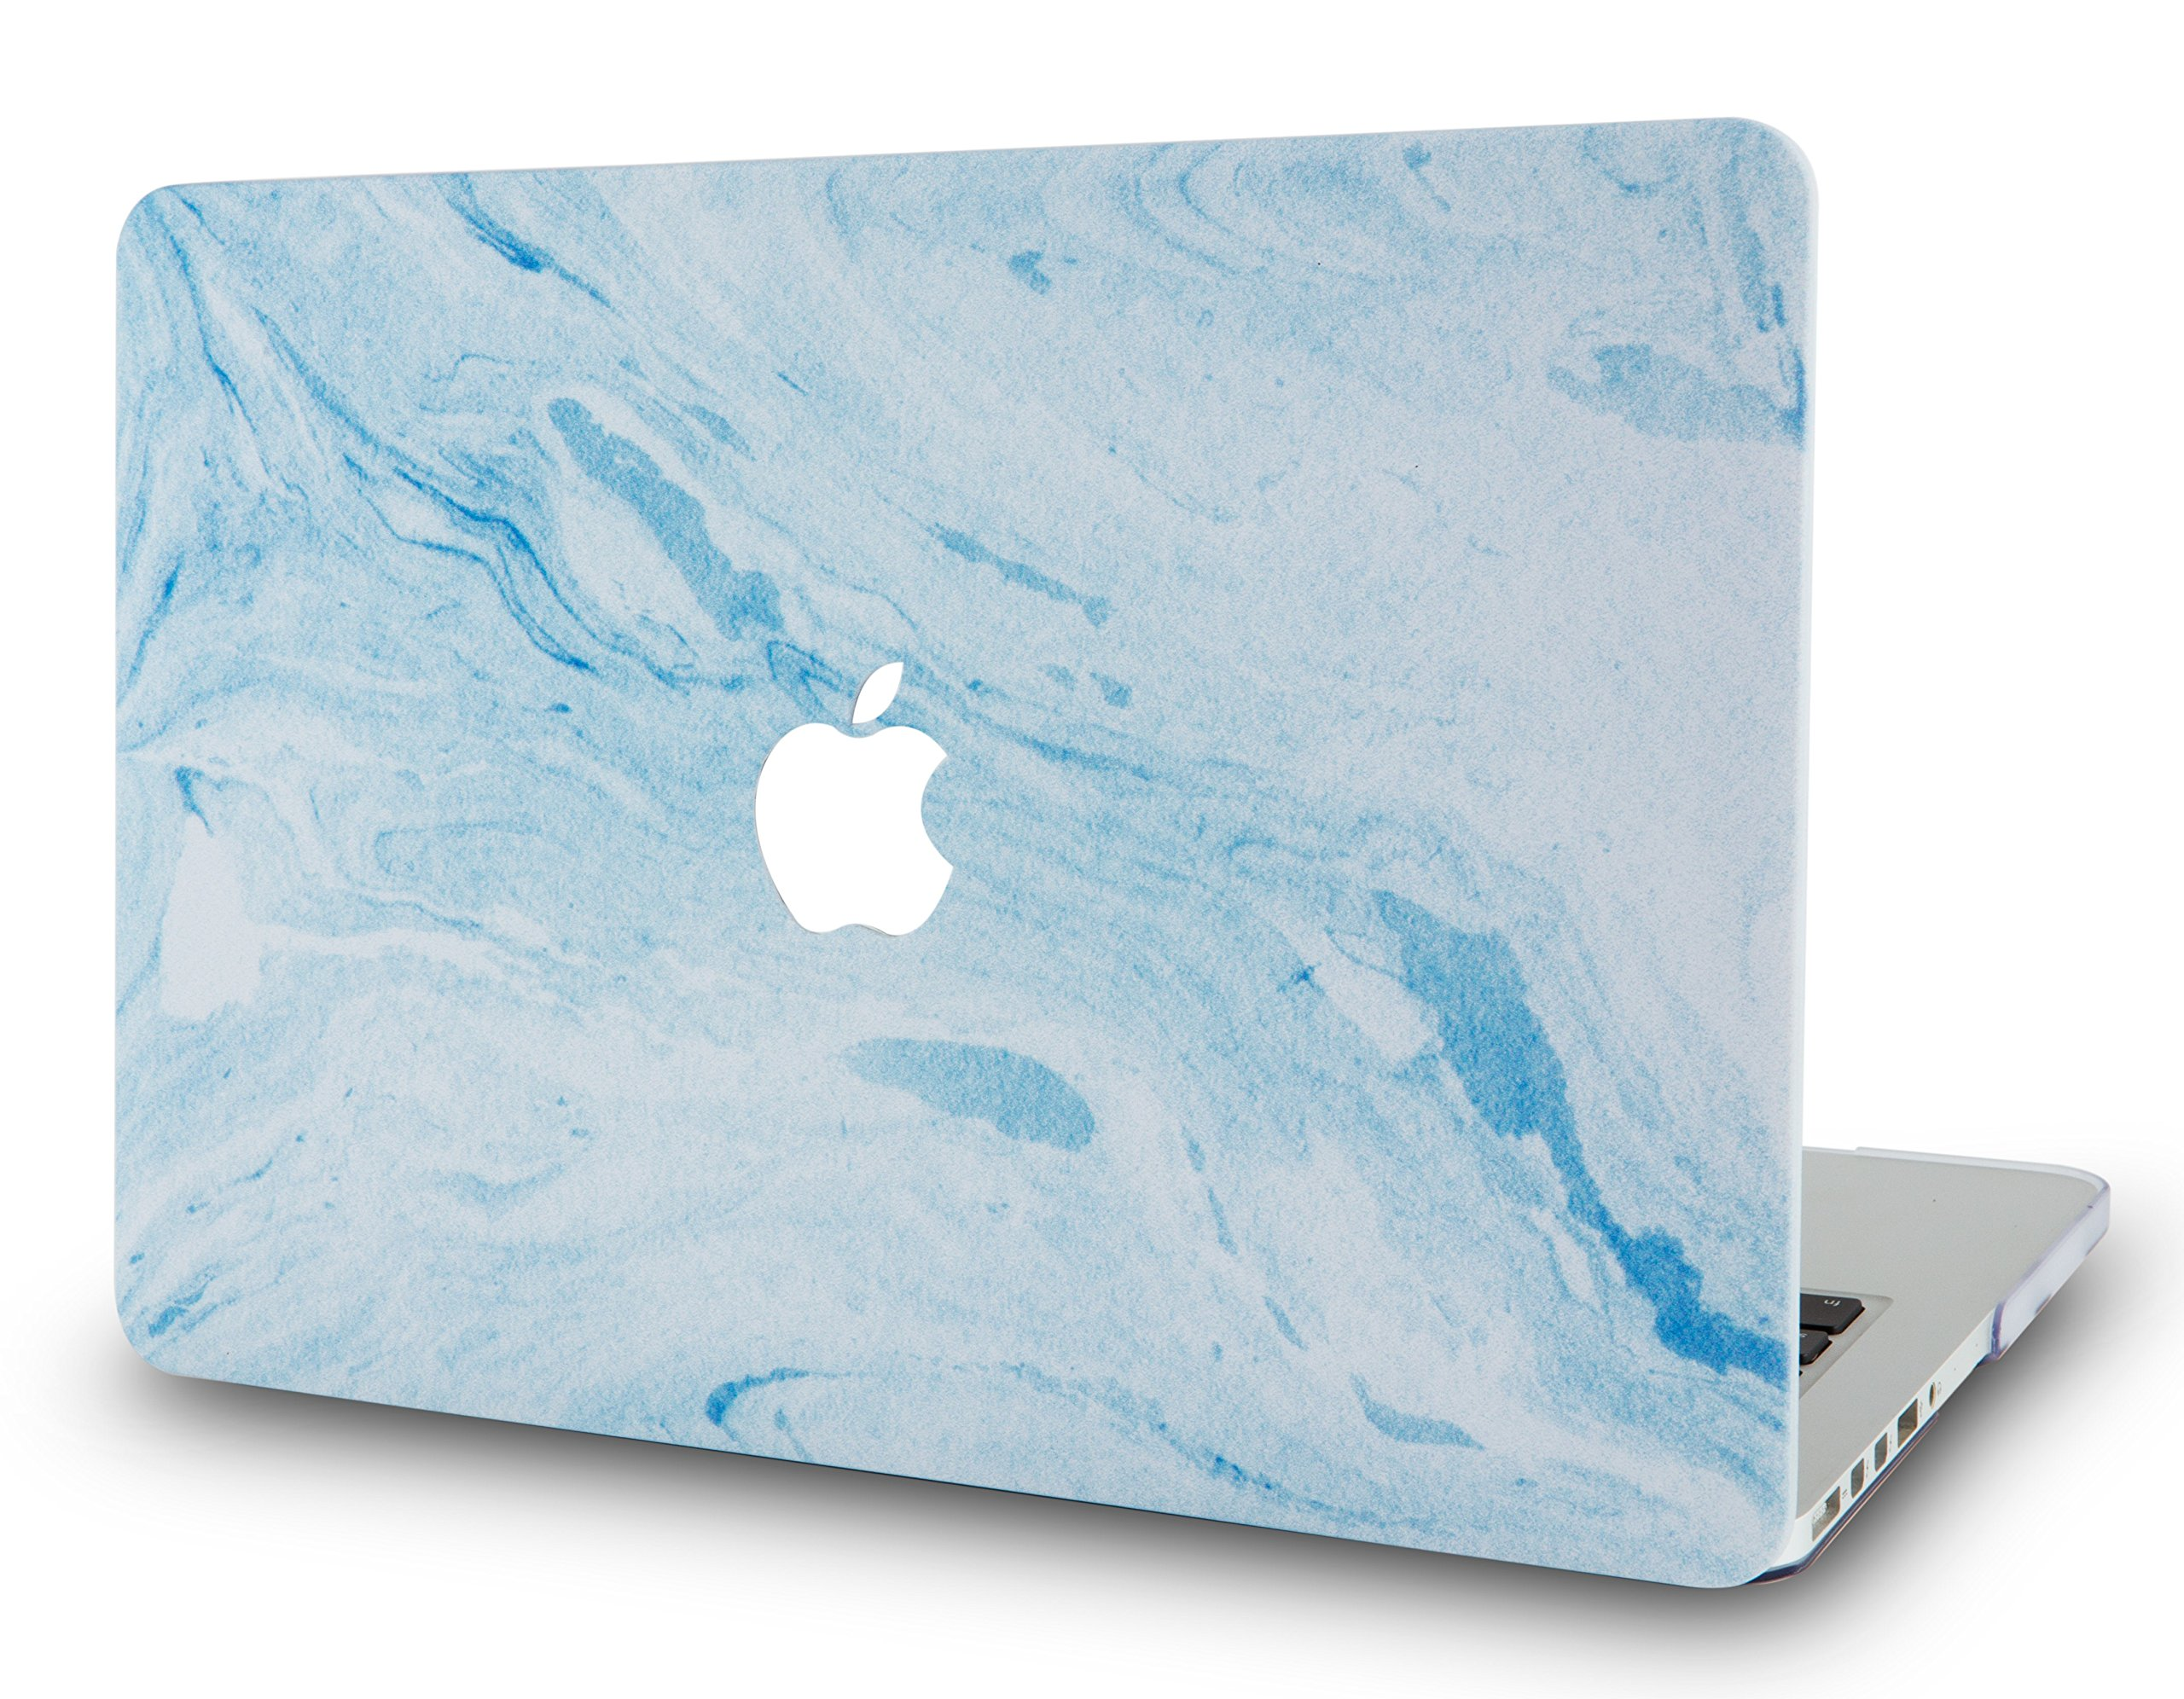 LuvCaseLaptopCaseforMacBookAir 13 Inch A1466 / A1369 (No Touch ID)RubberizedPlasticHardShellCover (Blue White Marble 3)